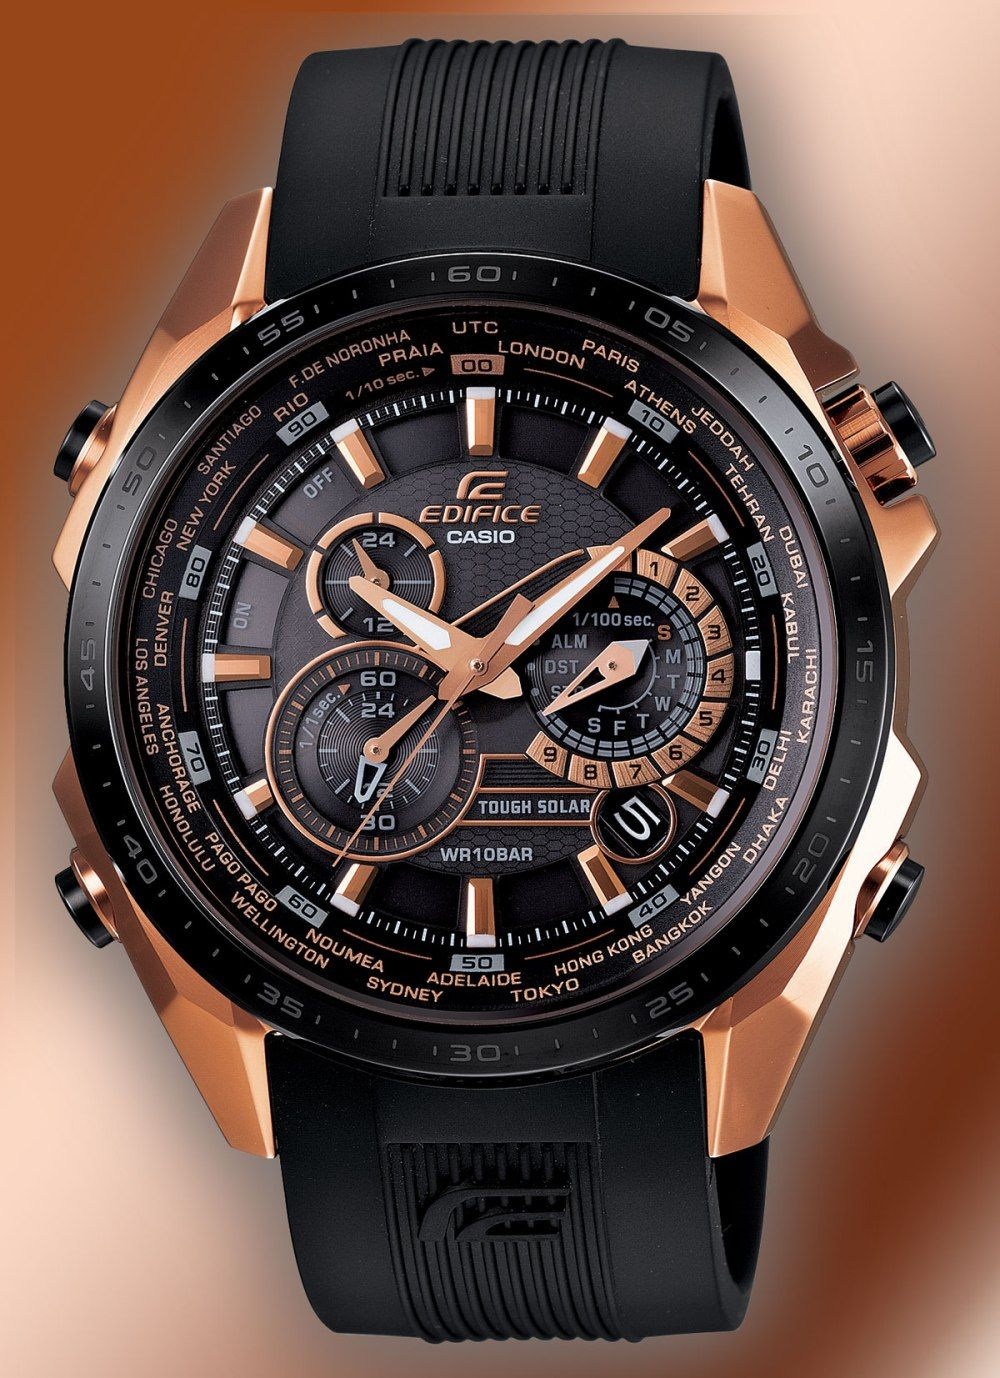 It's just a photo of Ambitious Casio Edifice Gold Label Efx 510p